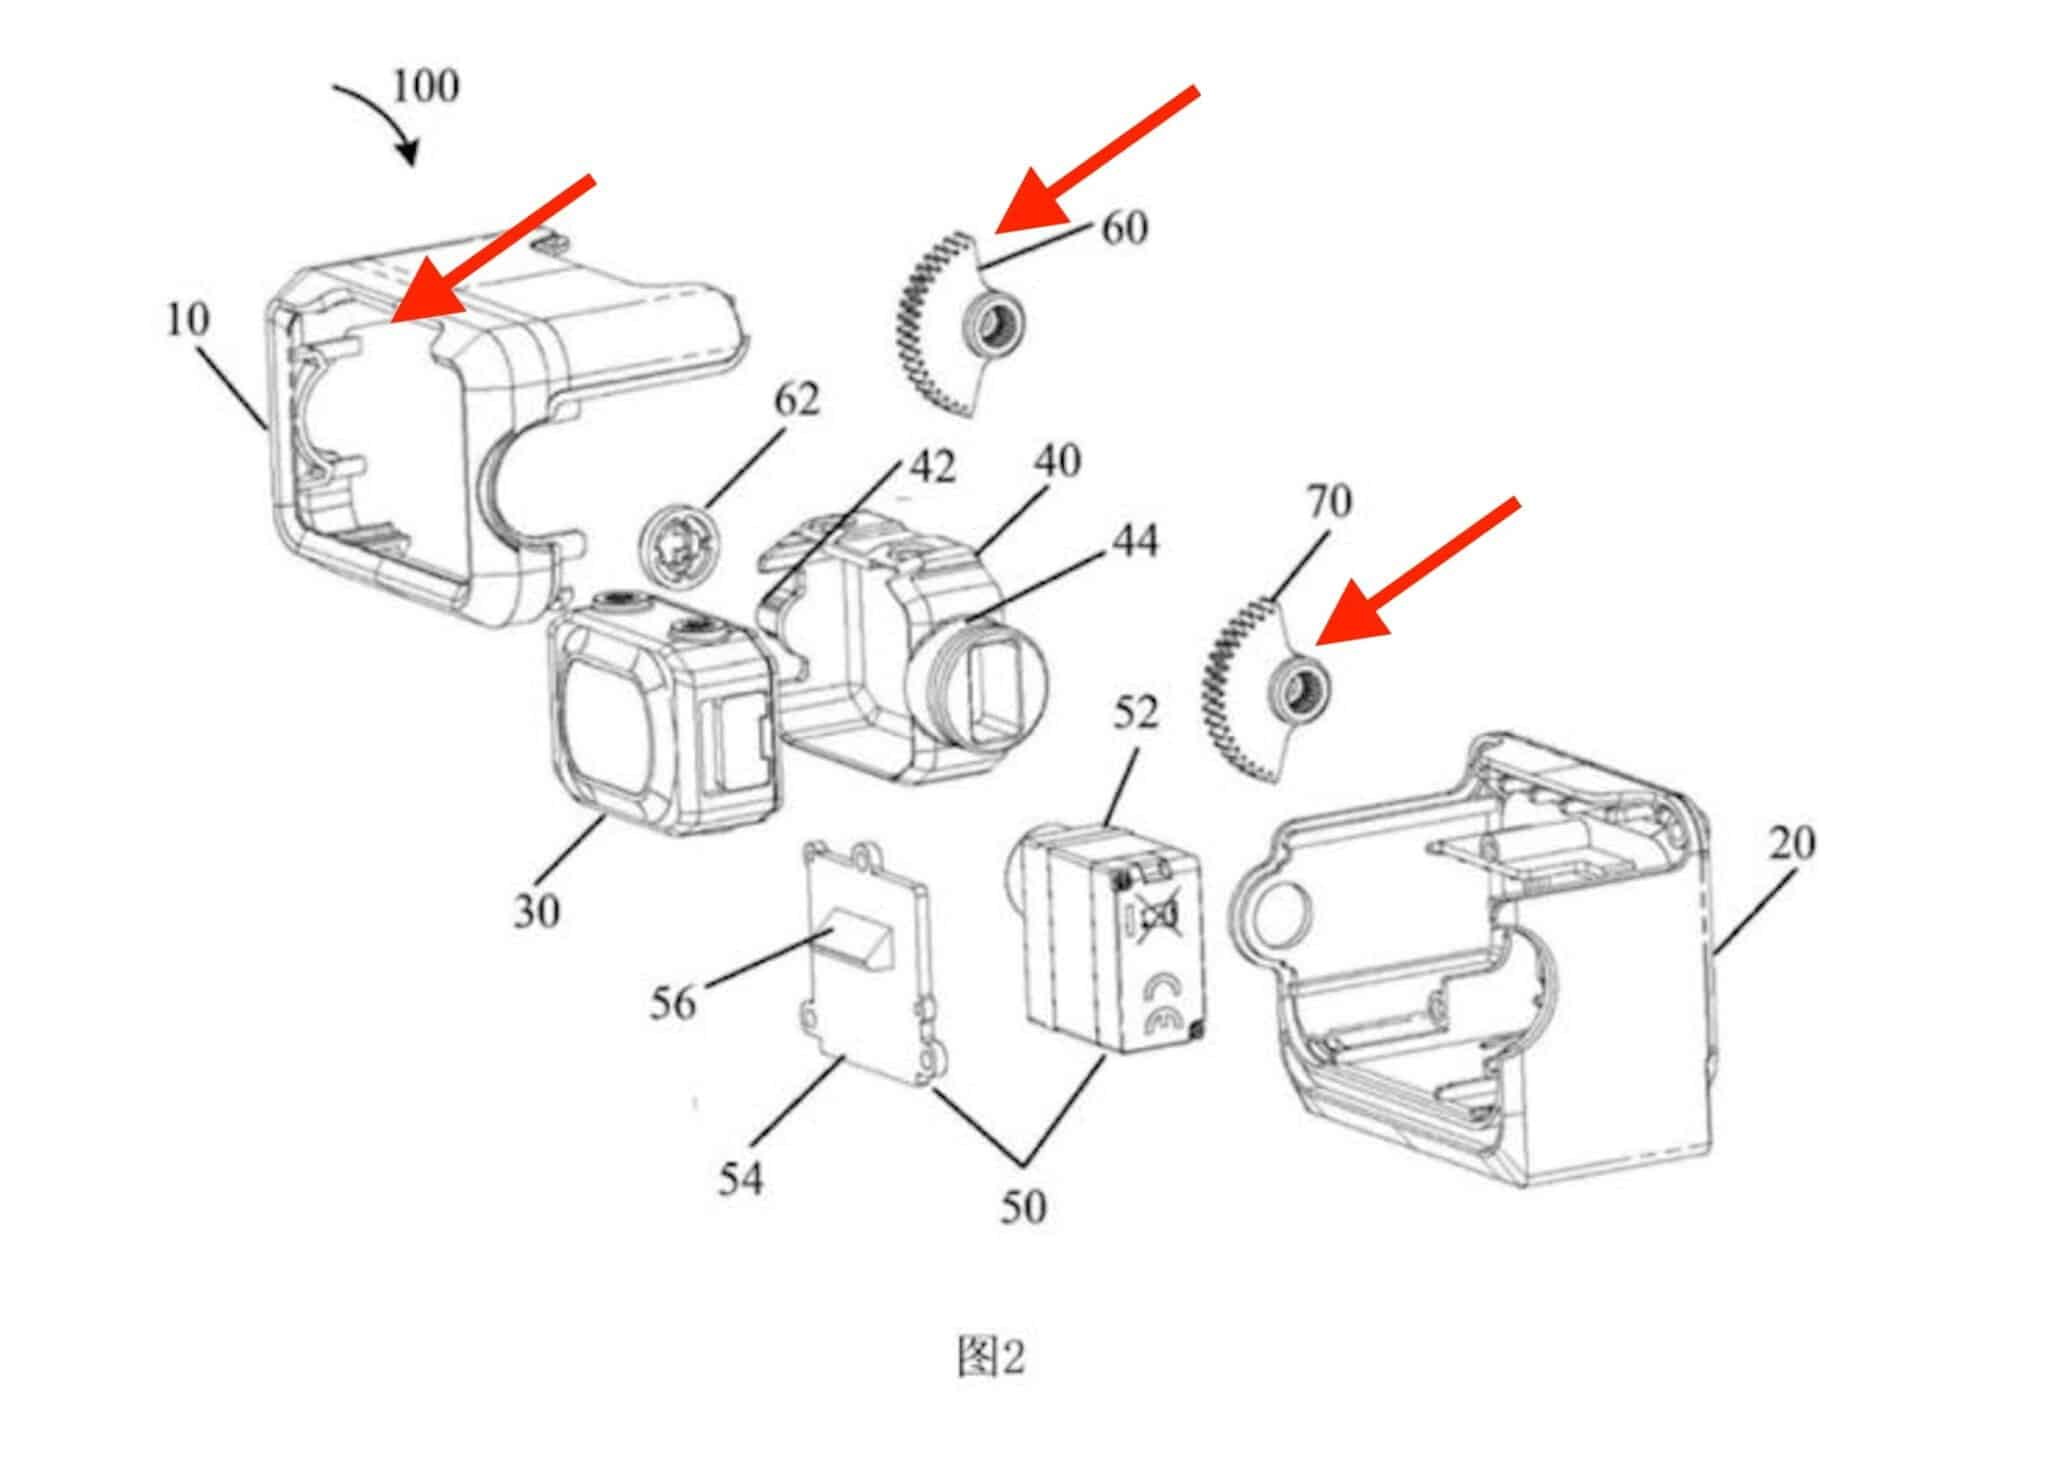 DJI FPV camera shows up in patent. Will DJI finally release an FPV drone?